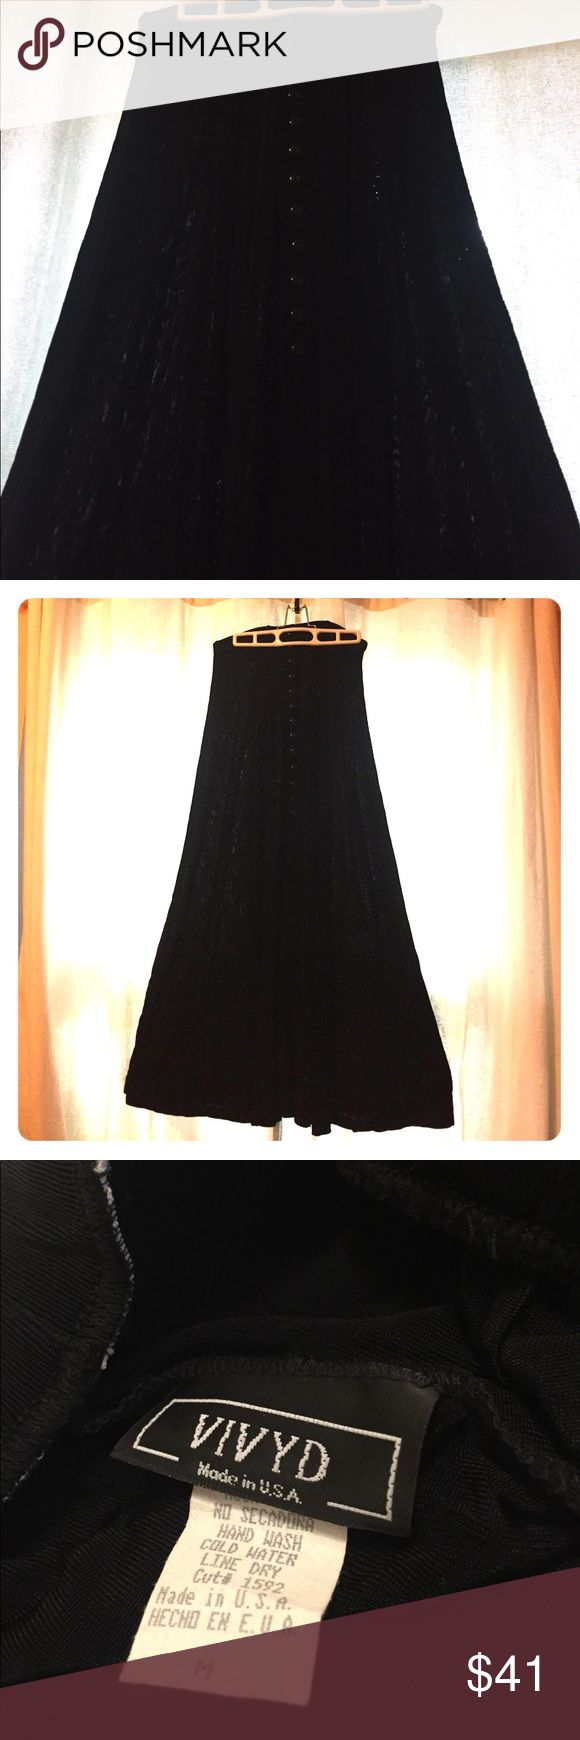 👠Black maxi skirt with sexy front slit 💃🏻 A black maxi skirt with  a row of black buttons and a sexy slit down the front, this light wait skirt will swish and swirl as you walk or dance.  Dress it down with tall black boots for work or wear it out in the evening with heels, this versatile and sophisticated skirt will quickly become a favorite. Vivyd Skirts Maxi